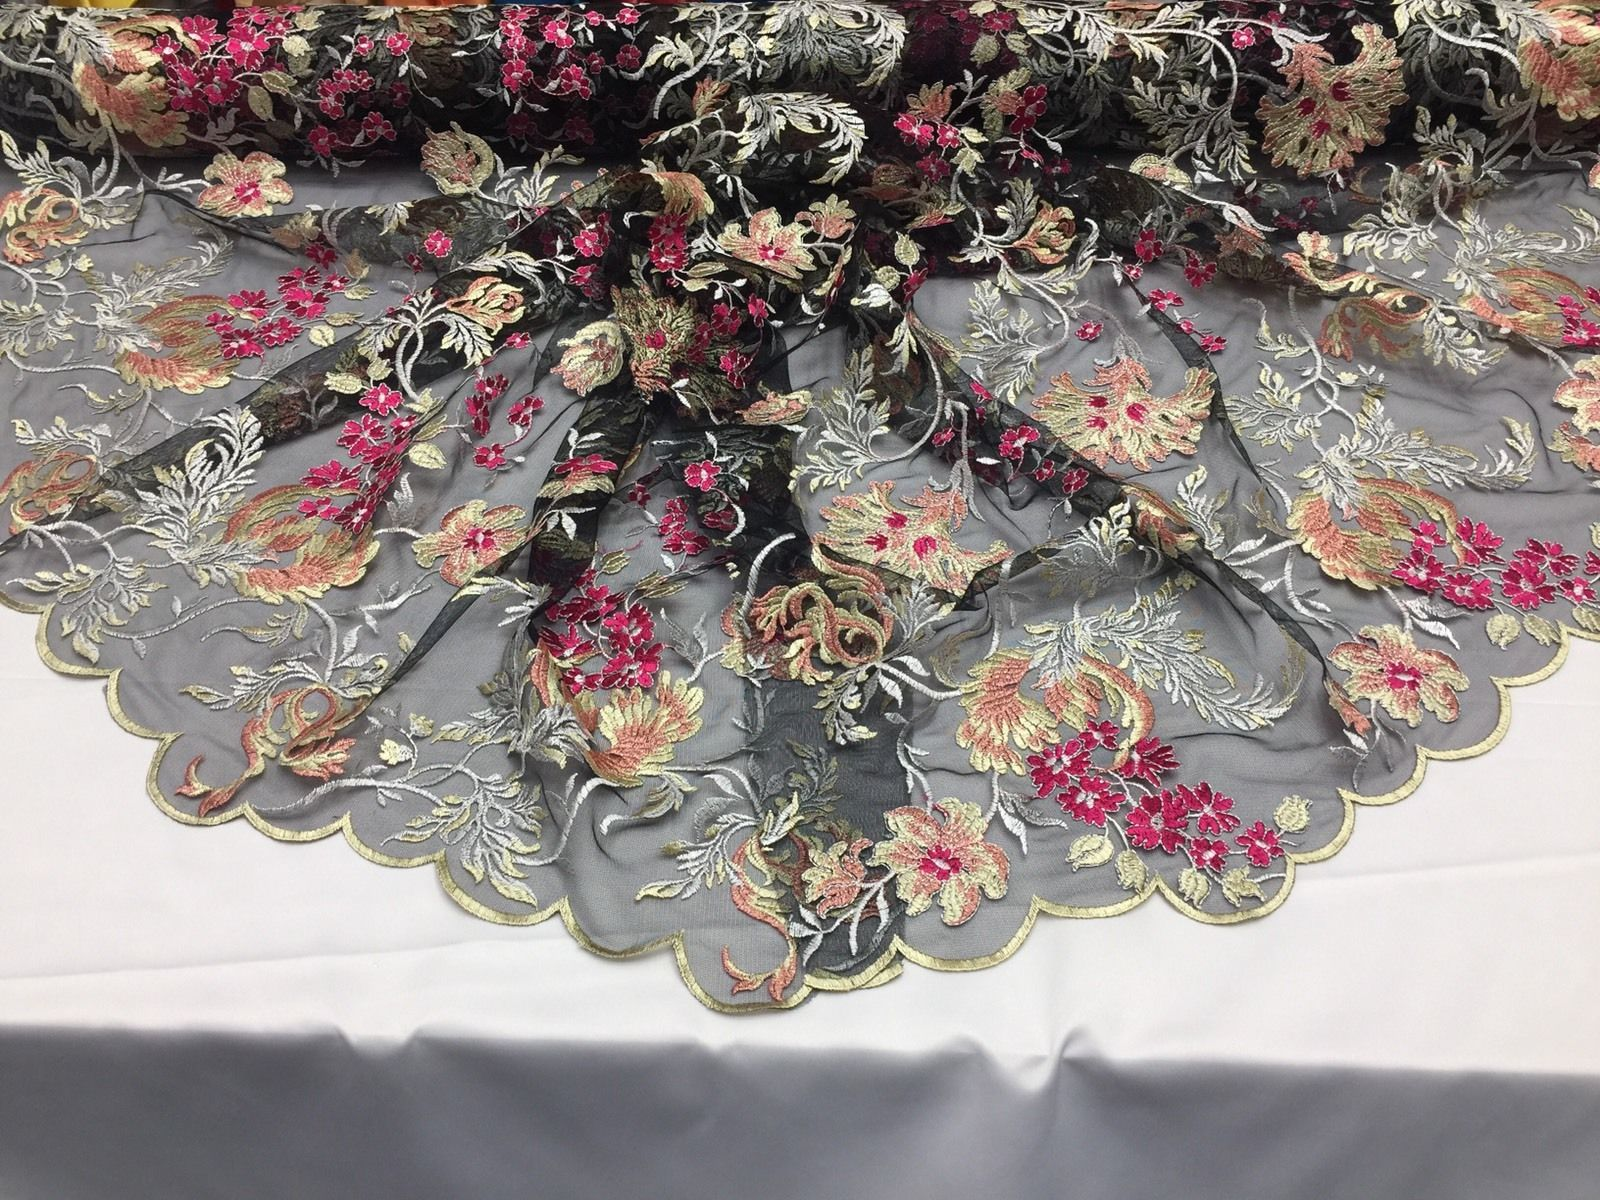 Flower Fabric - Mesh Lace Multi-Color For Bridal Wedding Dress By The Yard - KINGDOM OF FABRICS